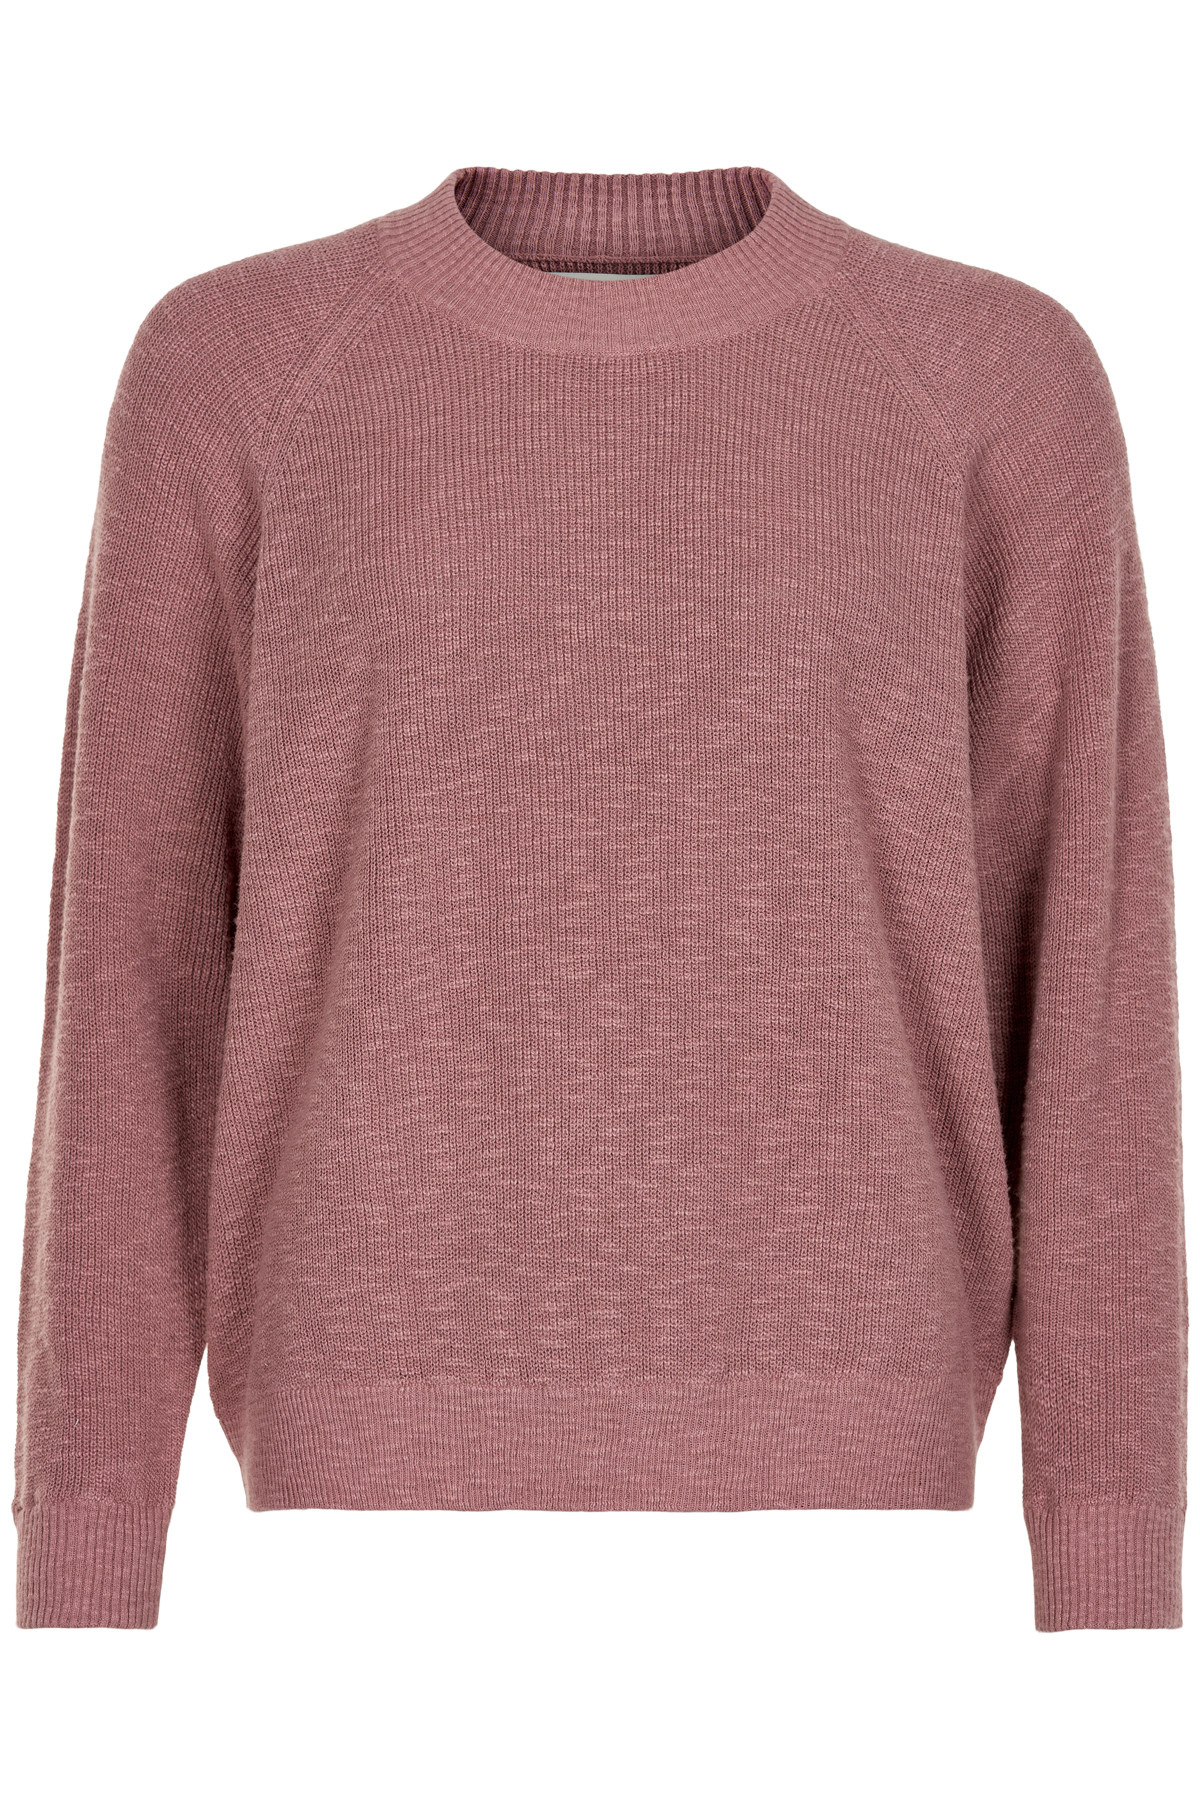 Image of   AND LESS ALBAMBINA PULLOVER 5220201 2530 (Nosta Rose, M)